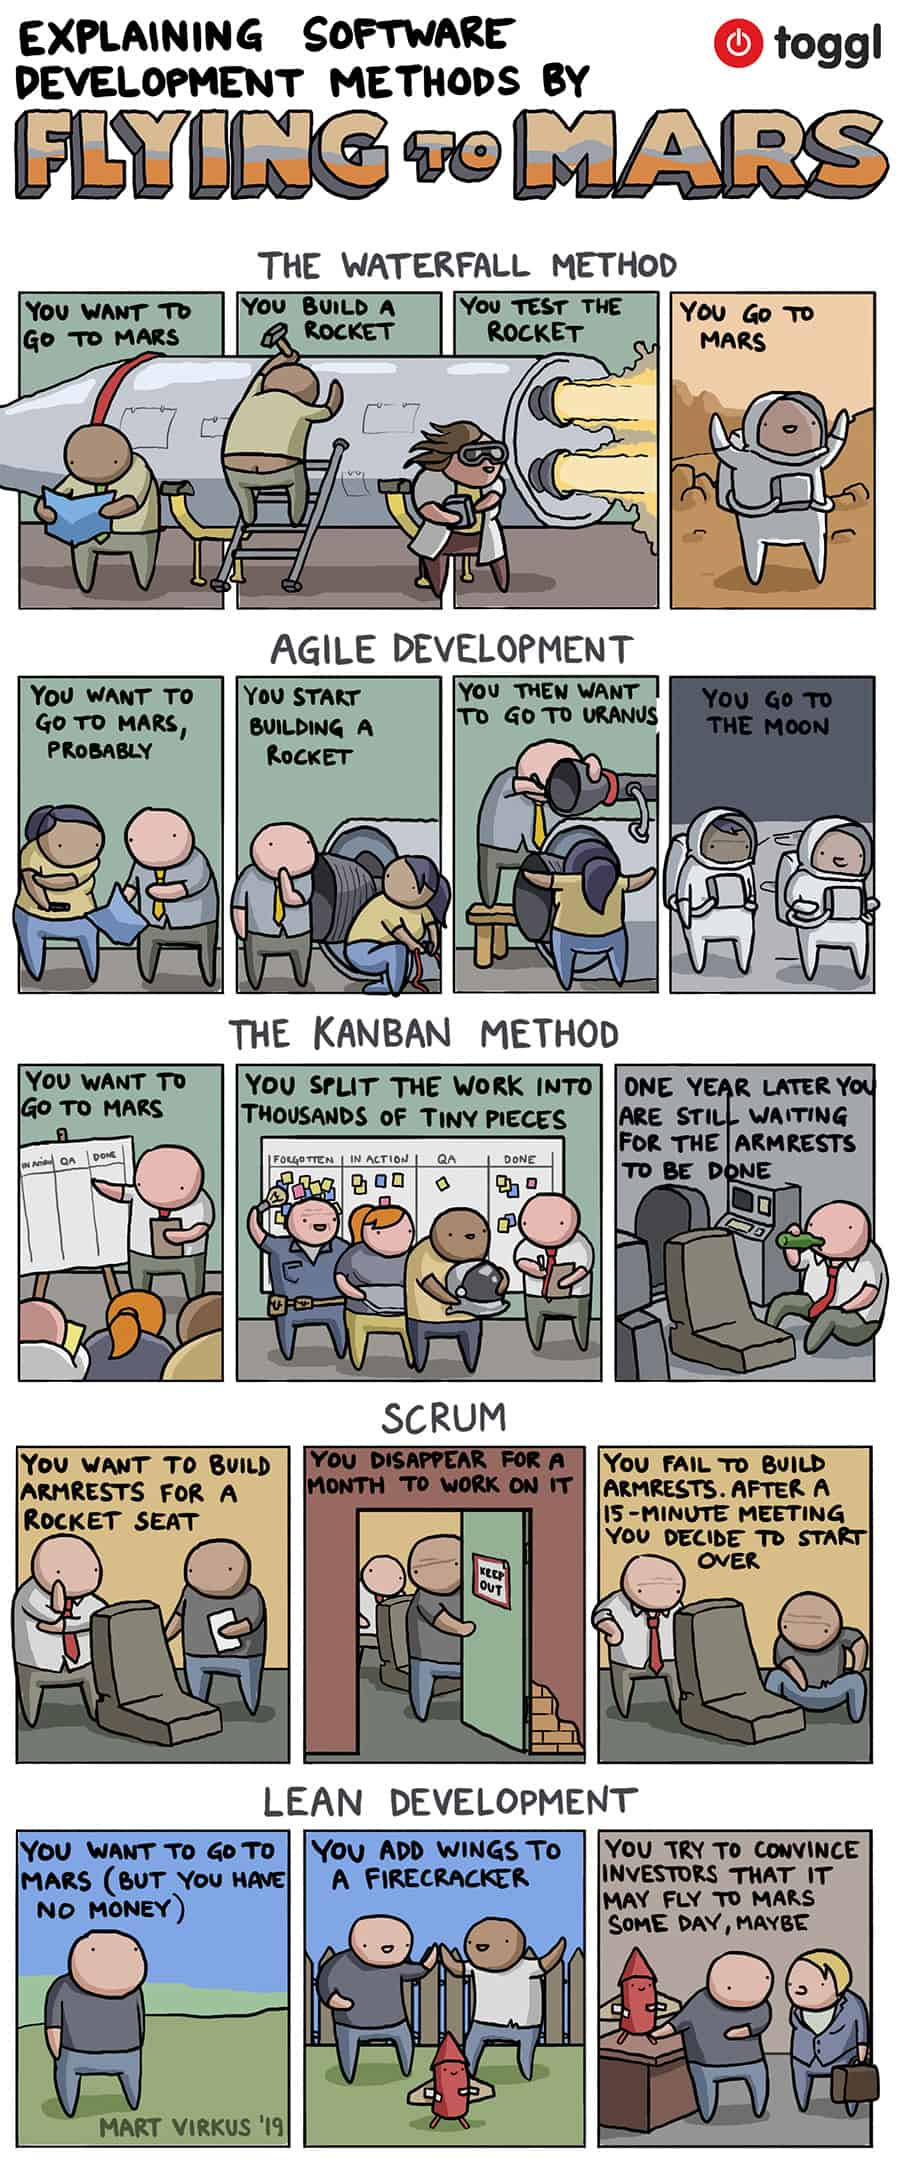 Software development methods explained by flying to Mars